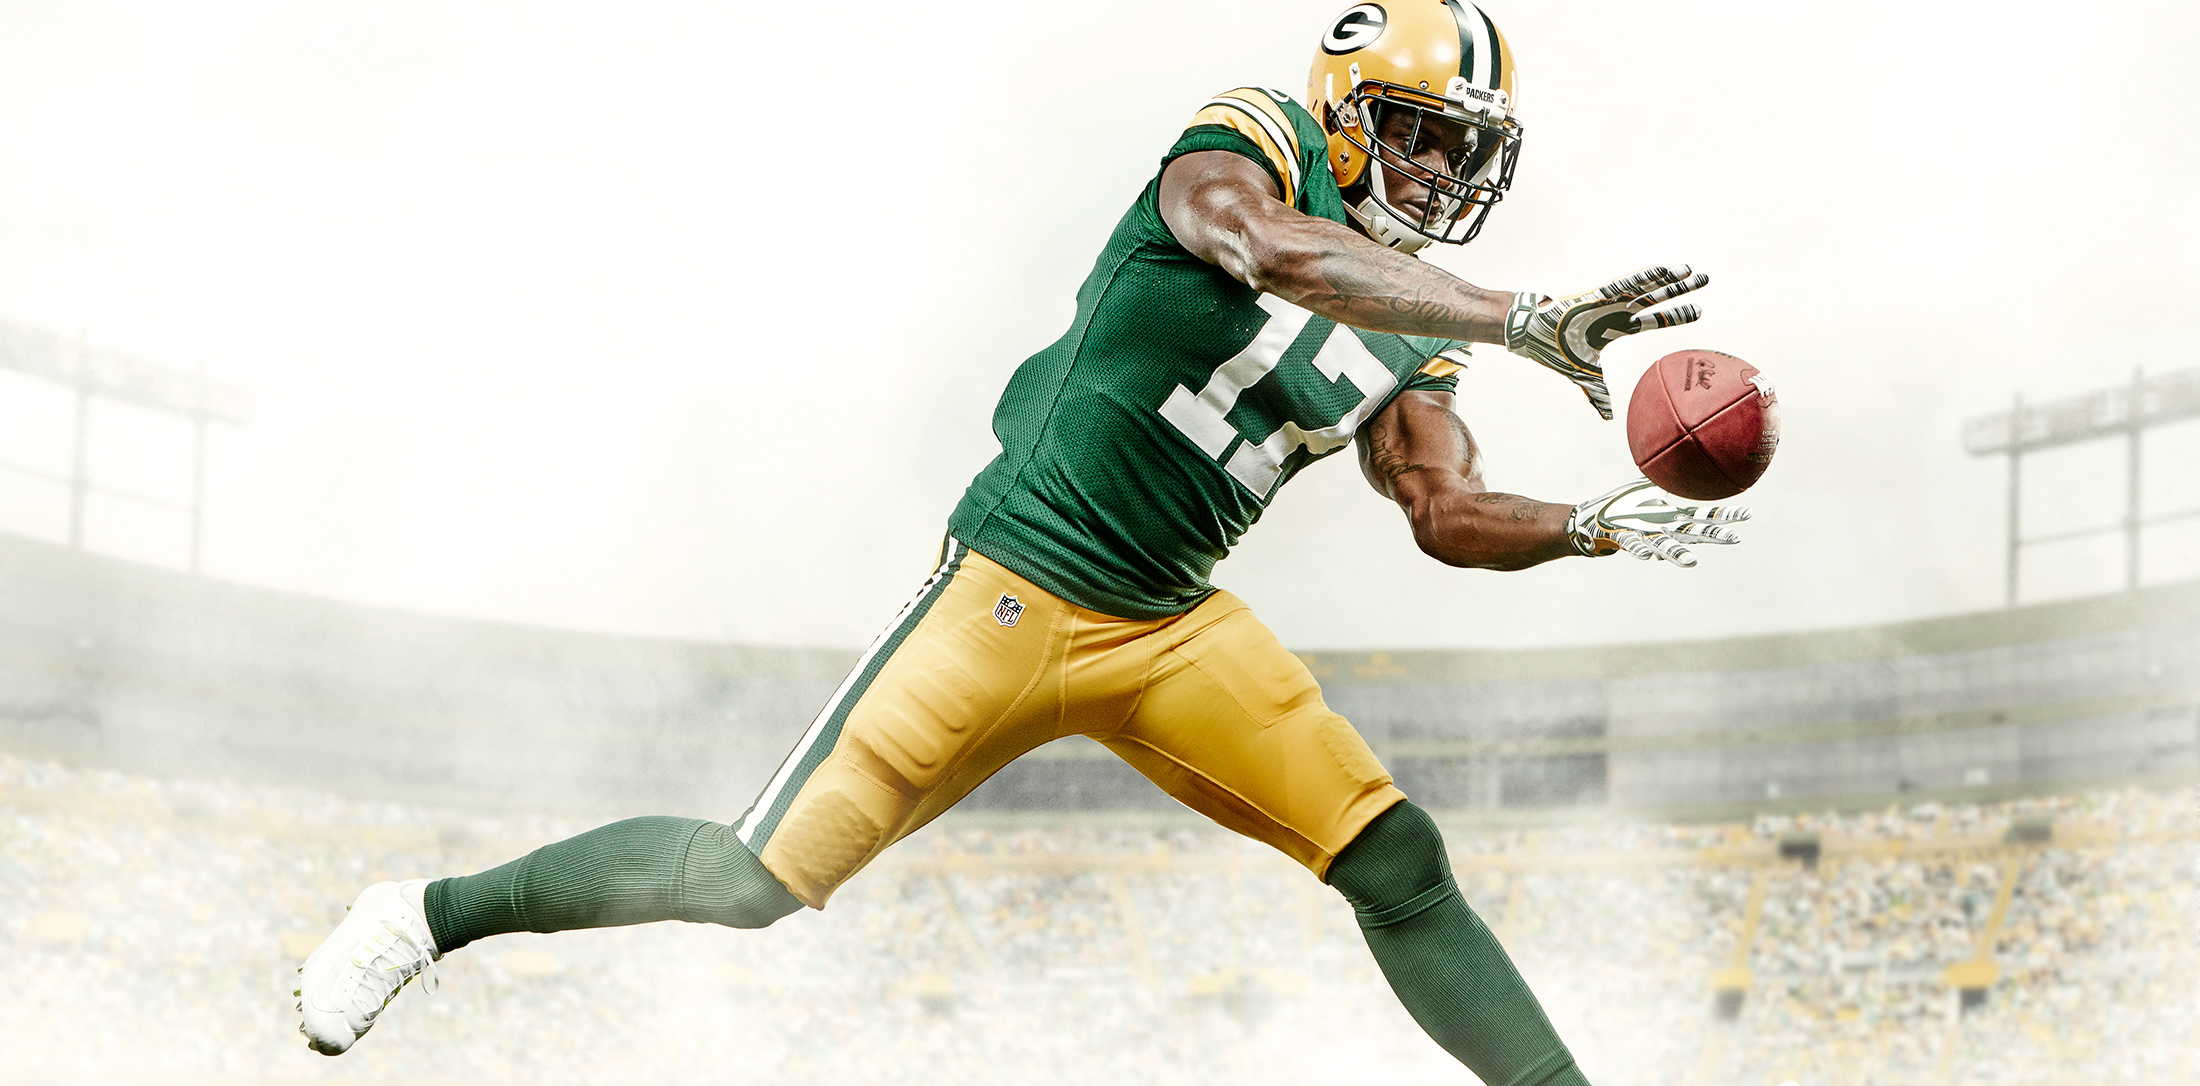 DAVANTE ADAMS - NFL - GREEN BAY PACKERS